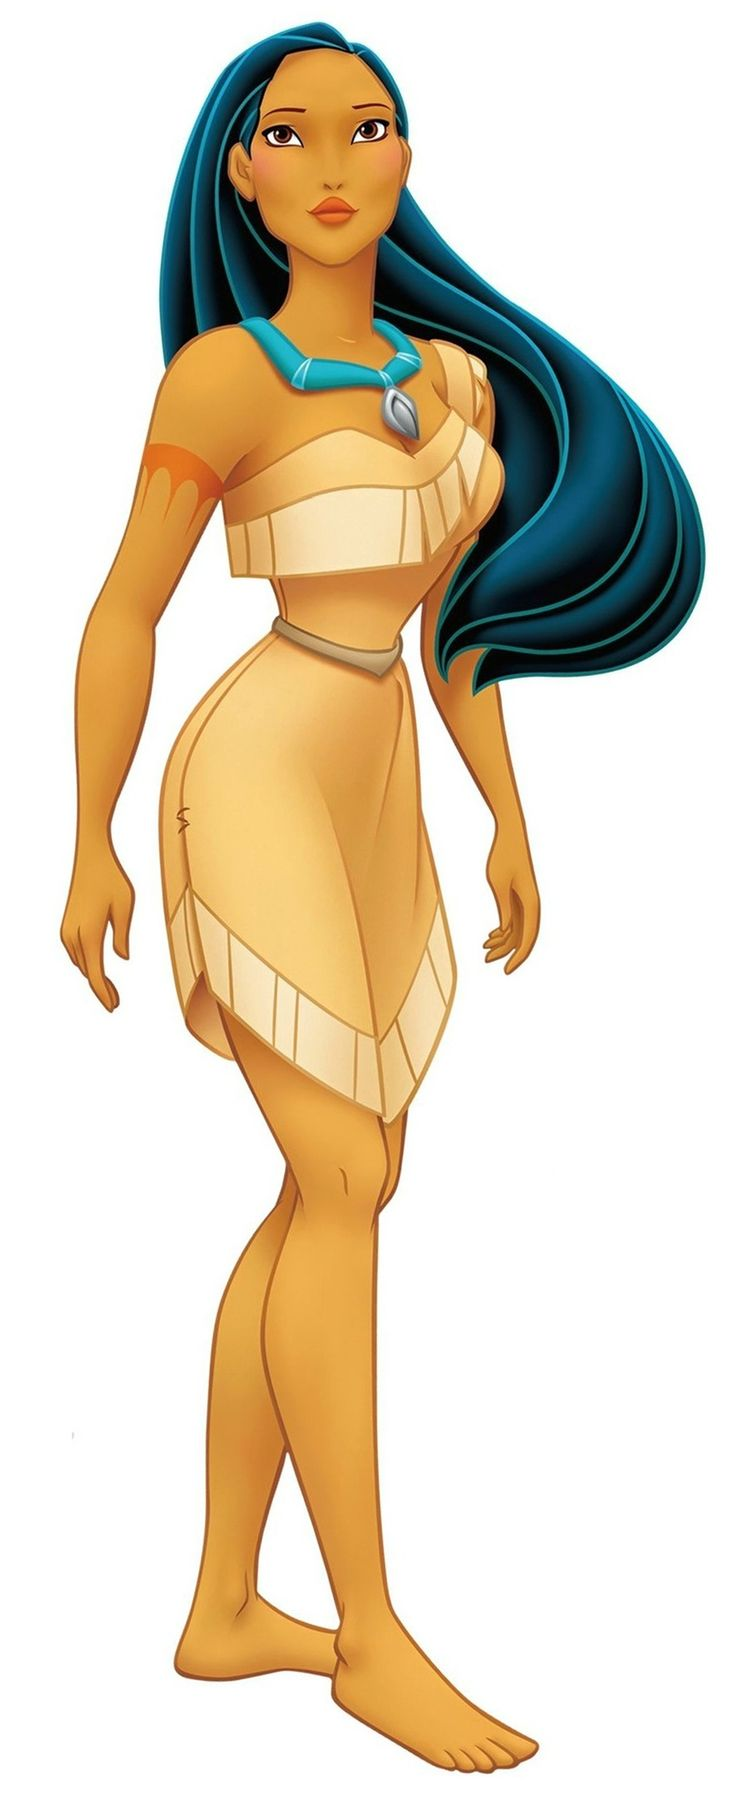 Disney Princess Pocahontas Cartoon | pocahontas background information feature films pocahontas pocahontas ...